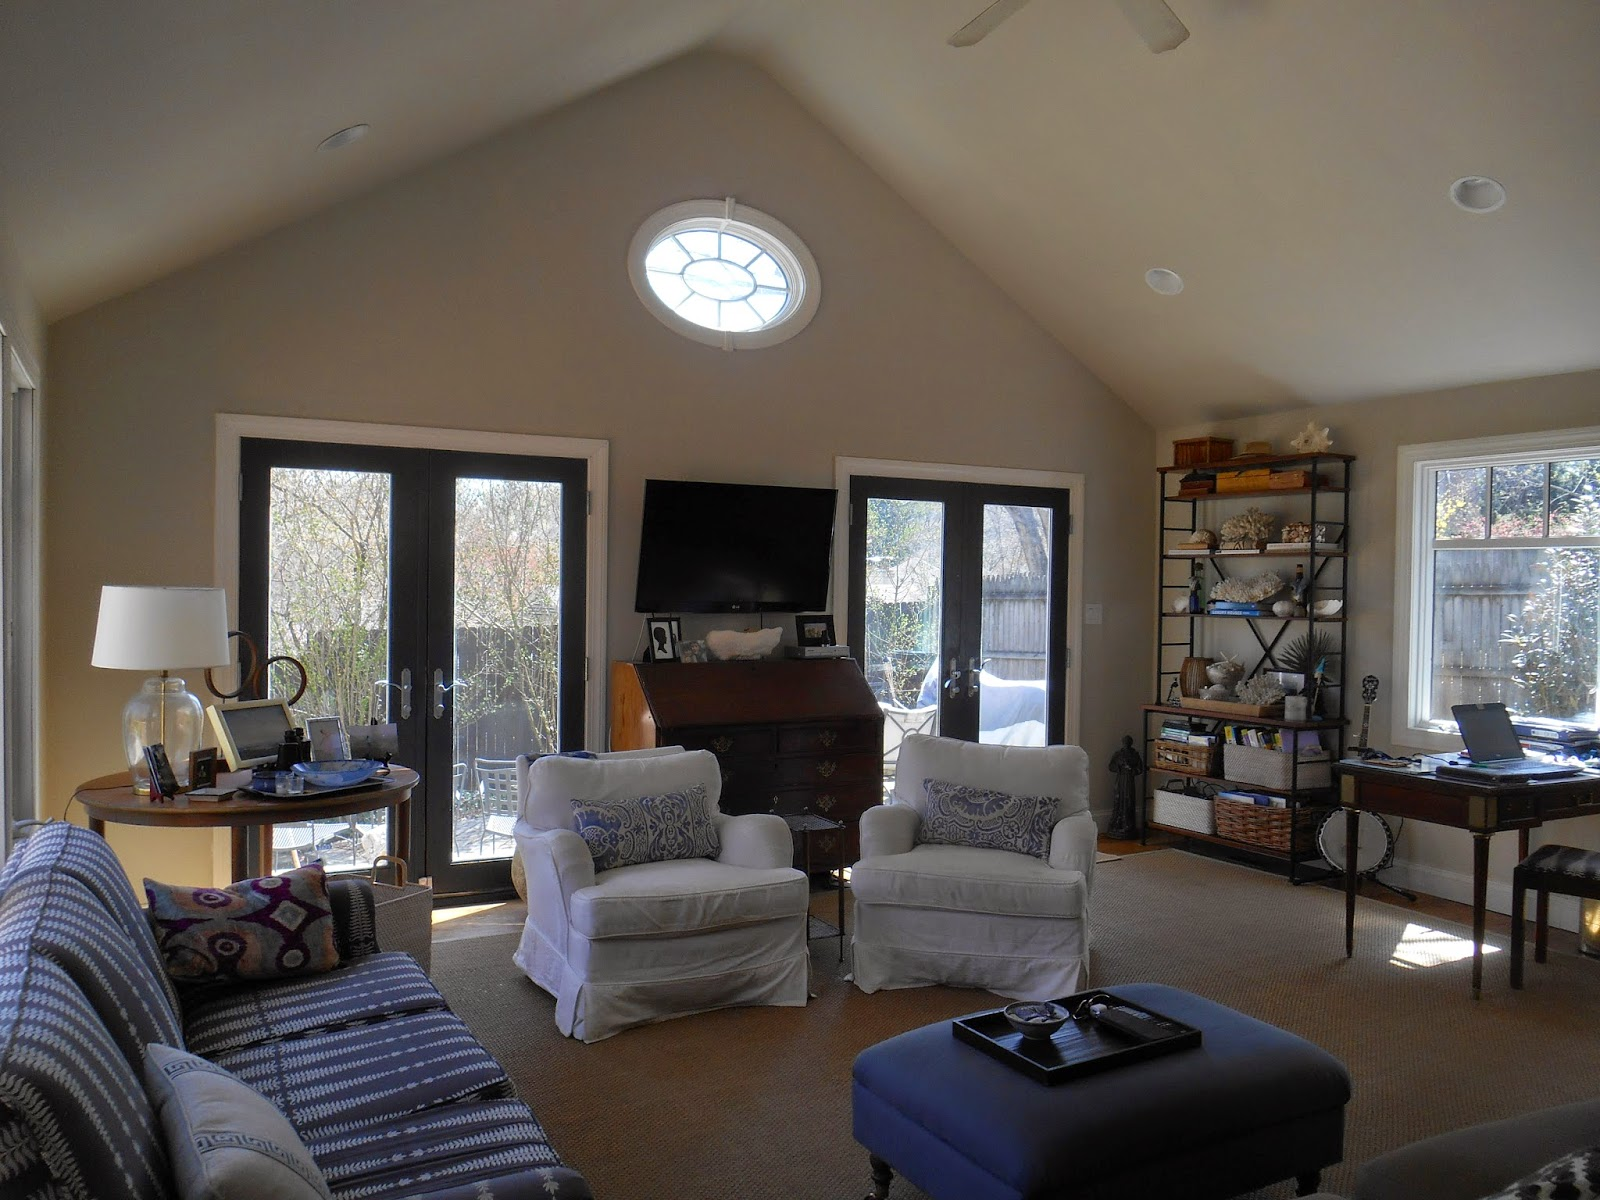 My notting hill blog - My Family Room If You Ve Read This Blog Over The Years You Ll Know That I Ve Never Done A Post On My Family Room Primarily For Two Reasons 1 It S A Bit